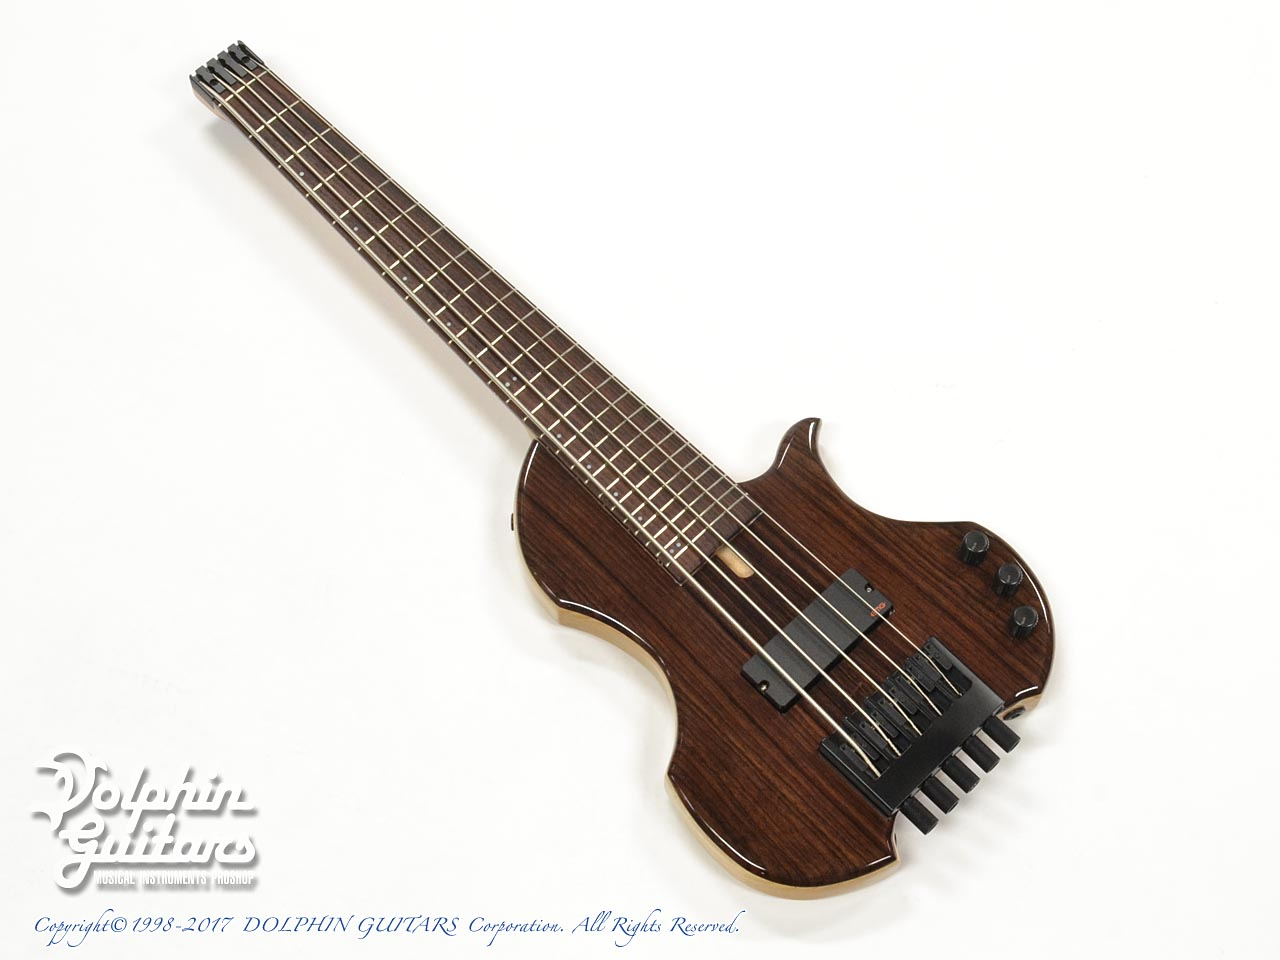 Charo's: CH-B5 Compact Headless Bass (Indian Rosewood) (0)